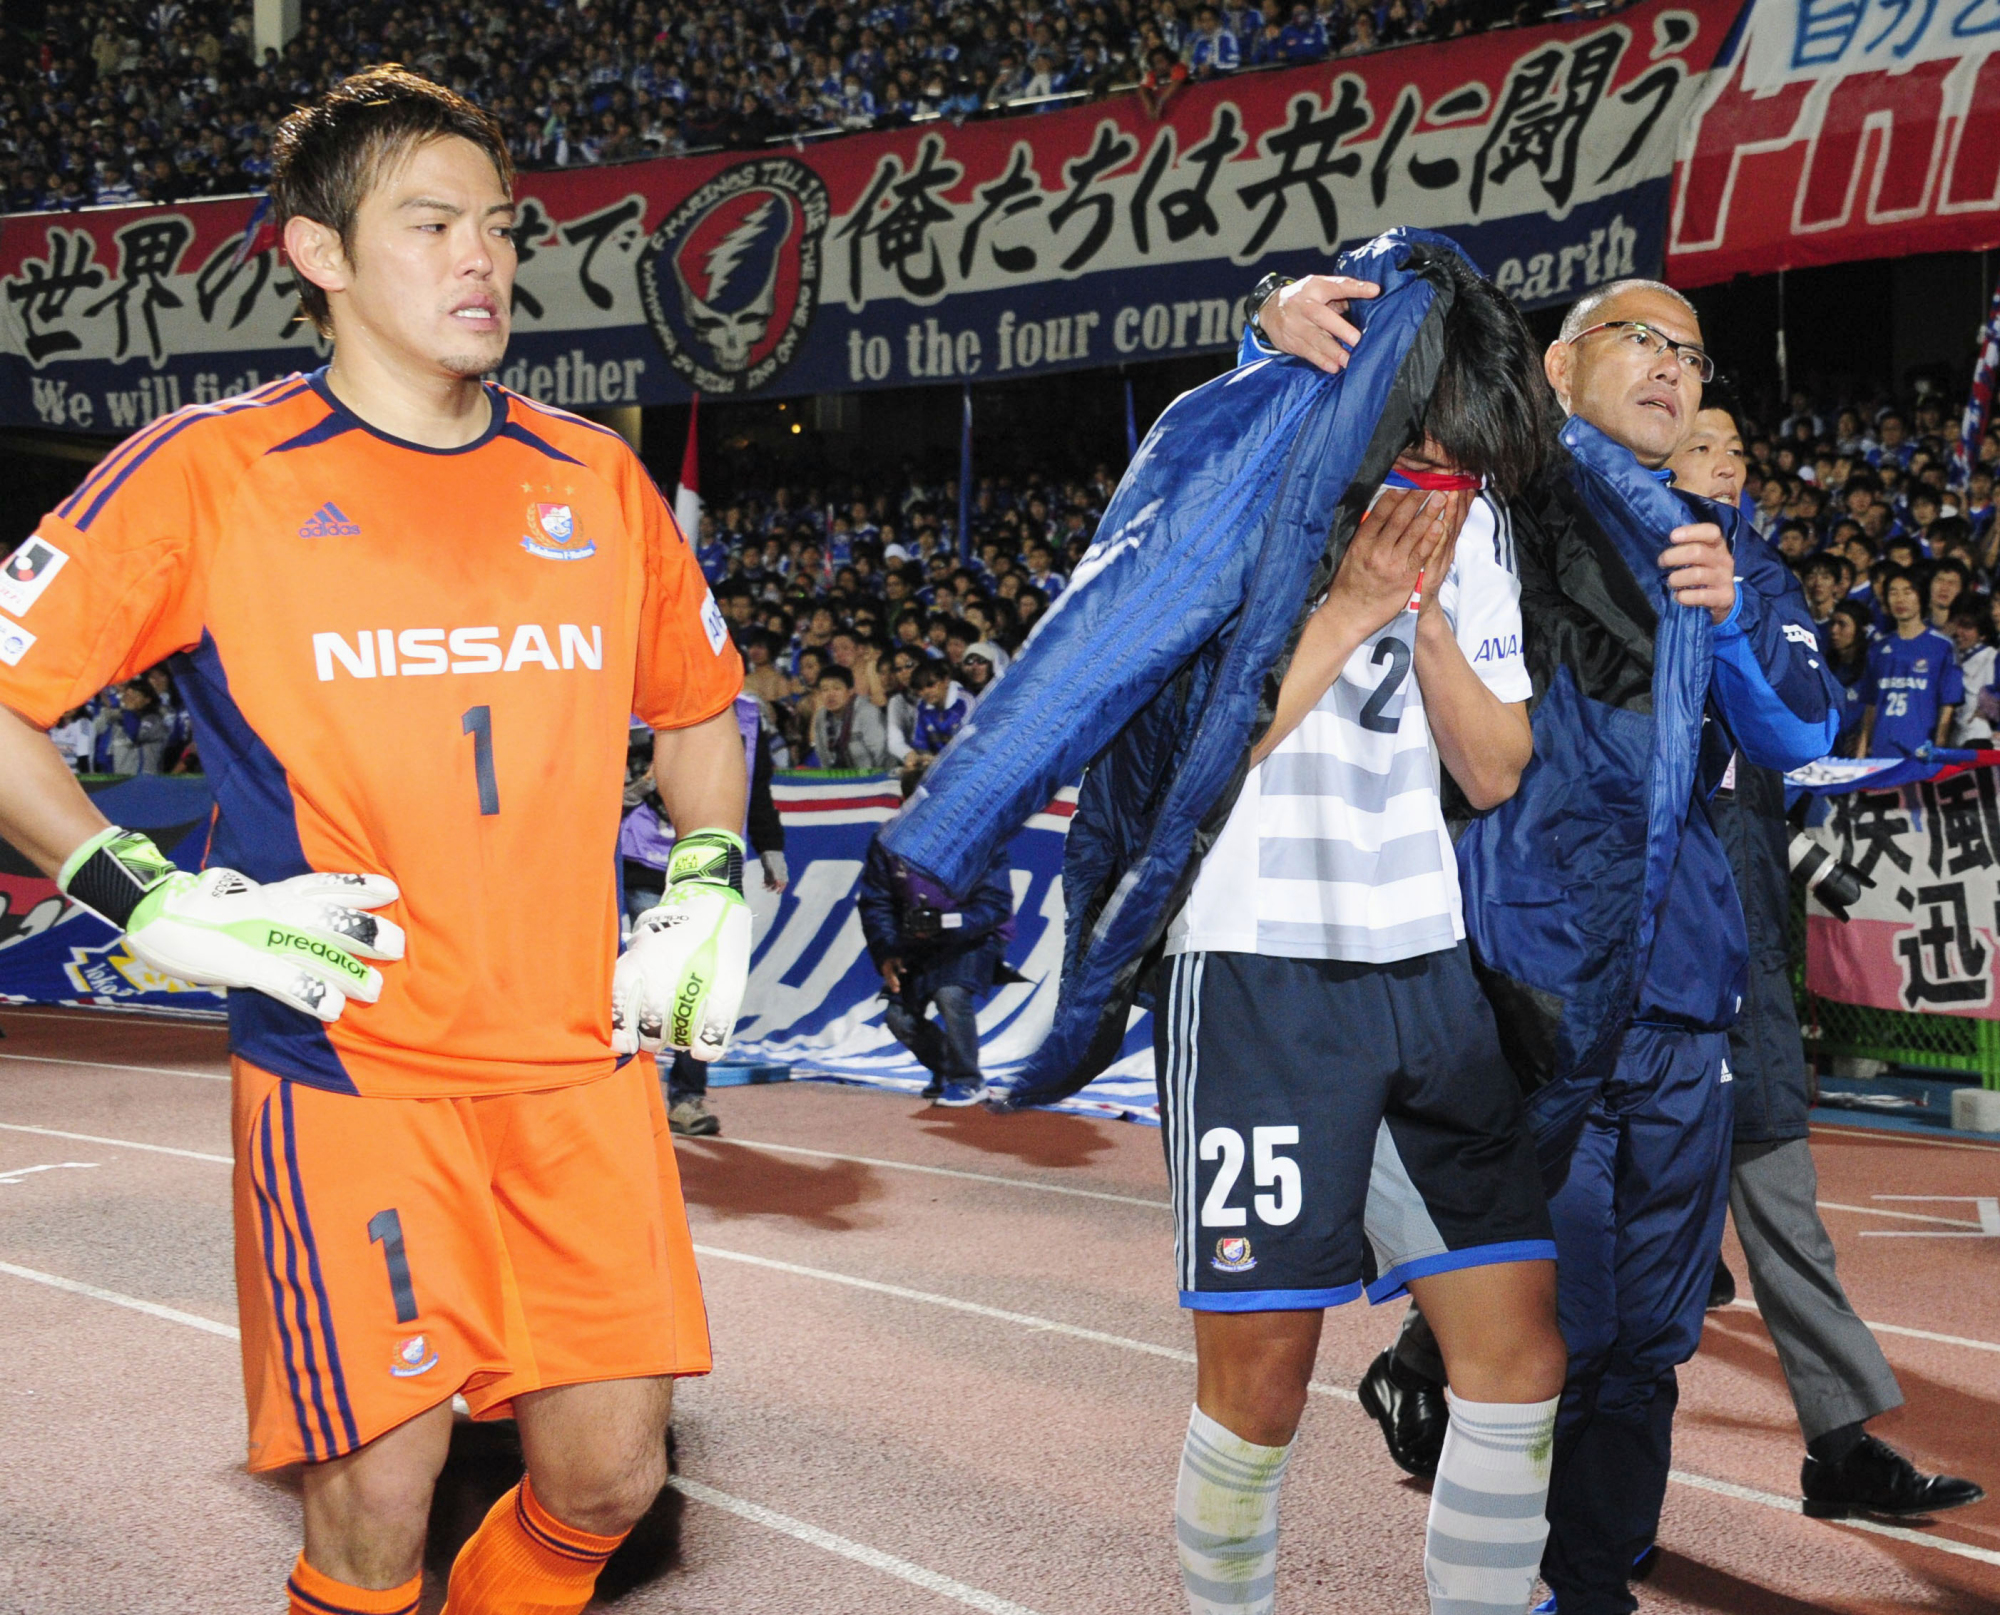 Yokohama F. Marinos captain Shunsuke Nakamura (center) is comforted by club staff after the team's loss to rival Kawasaki Frontale on Dec. 7, 2013, the final day of that year's J. League season, at Todoroki Stadium. | KYODO